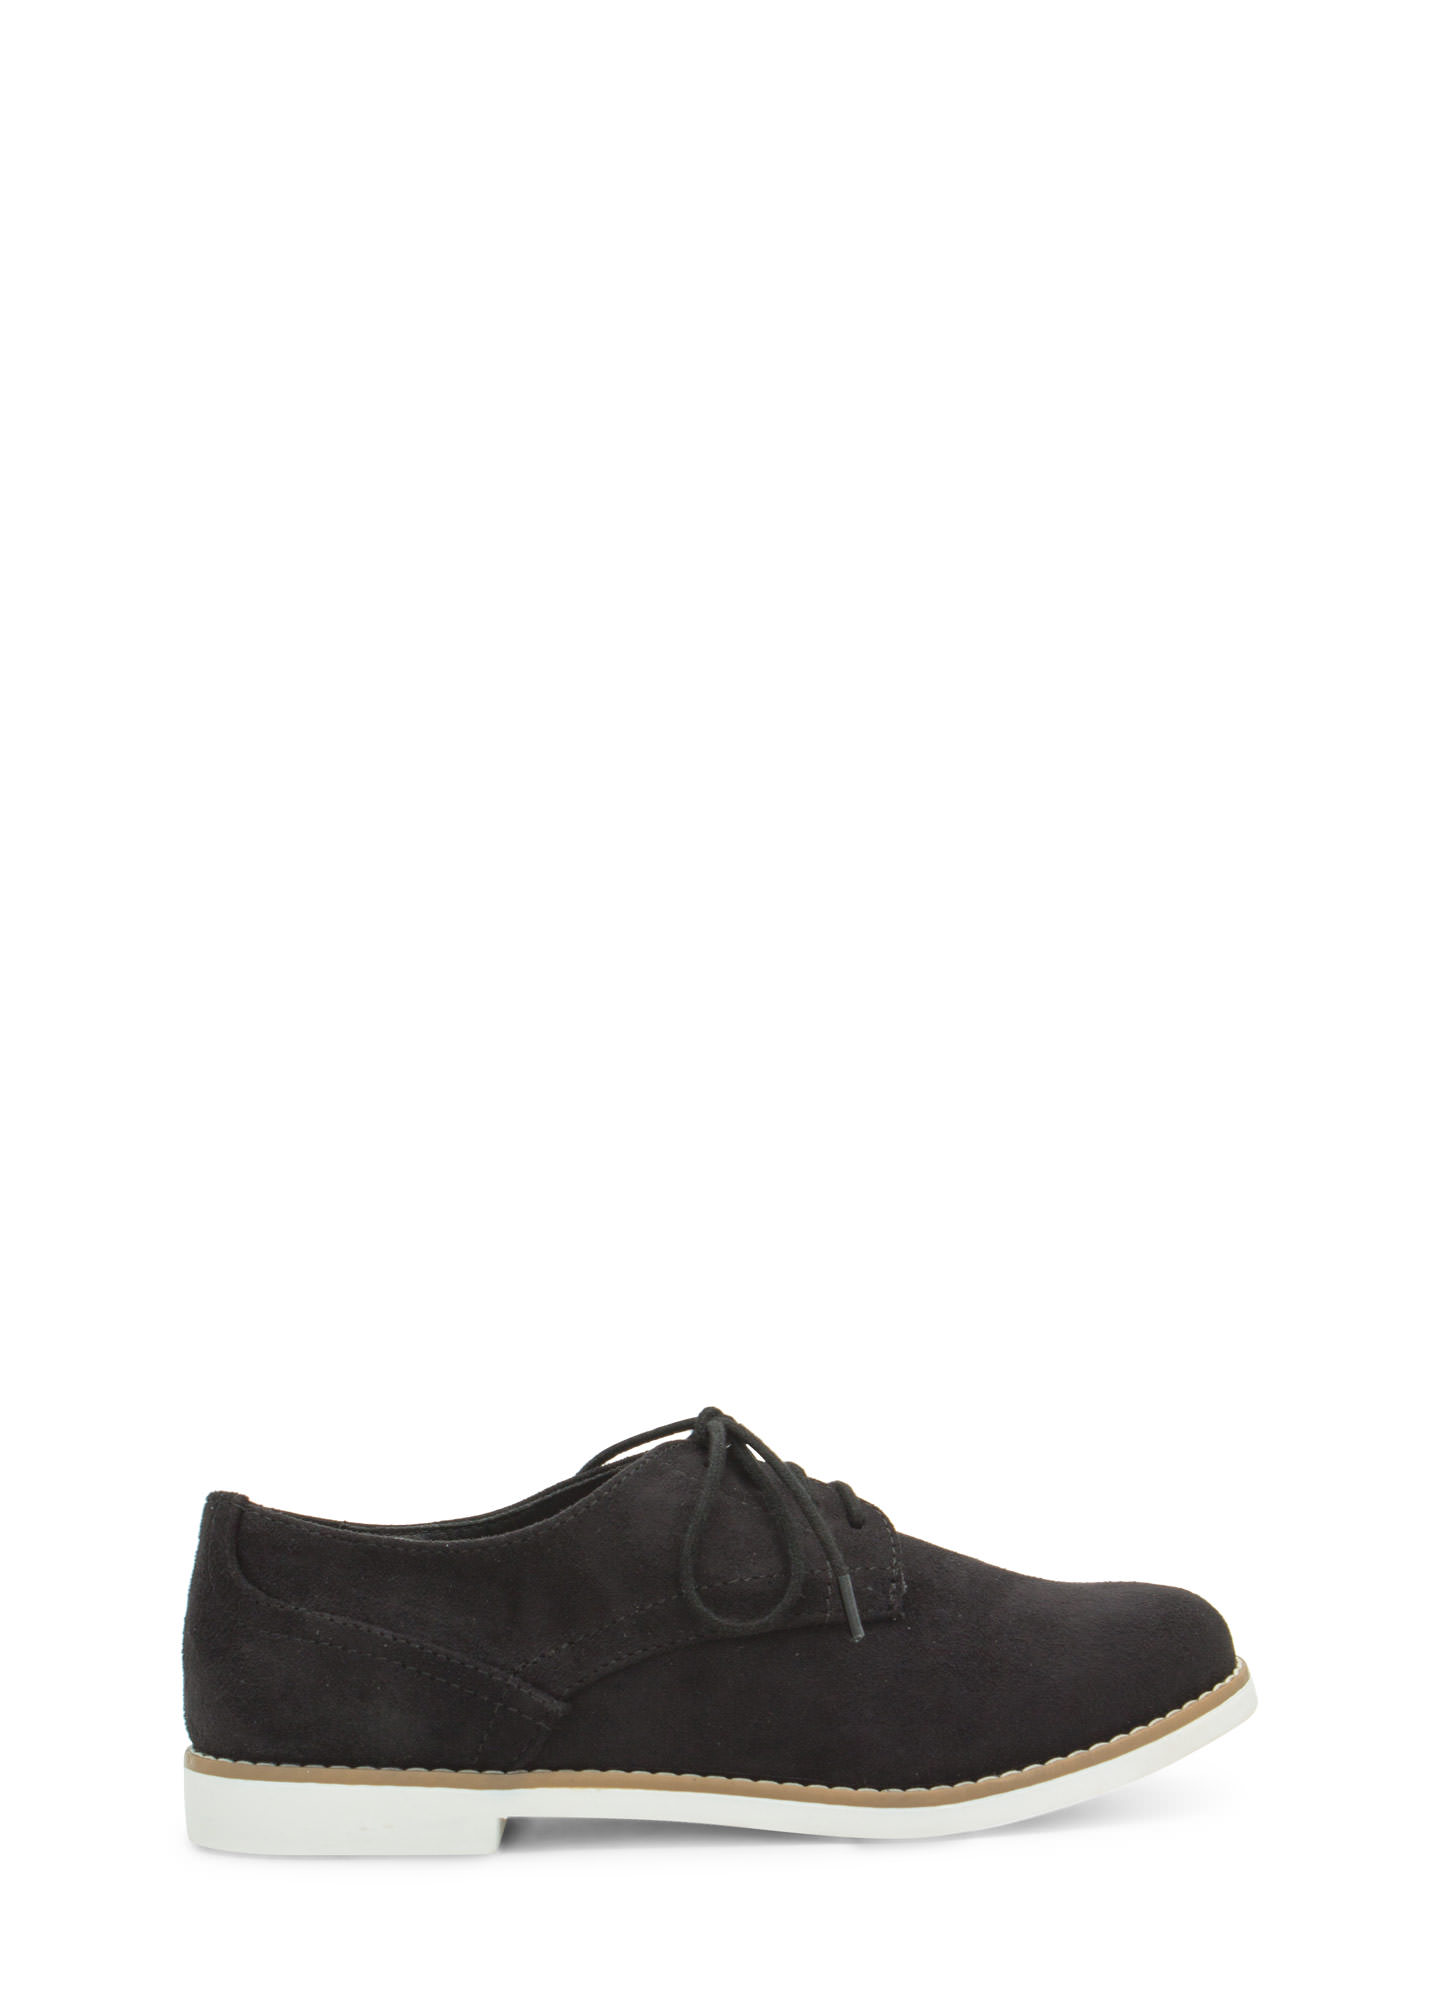 Tomboy Perfection Lace-Up Oxfords BLACKWHITE